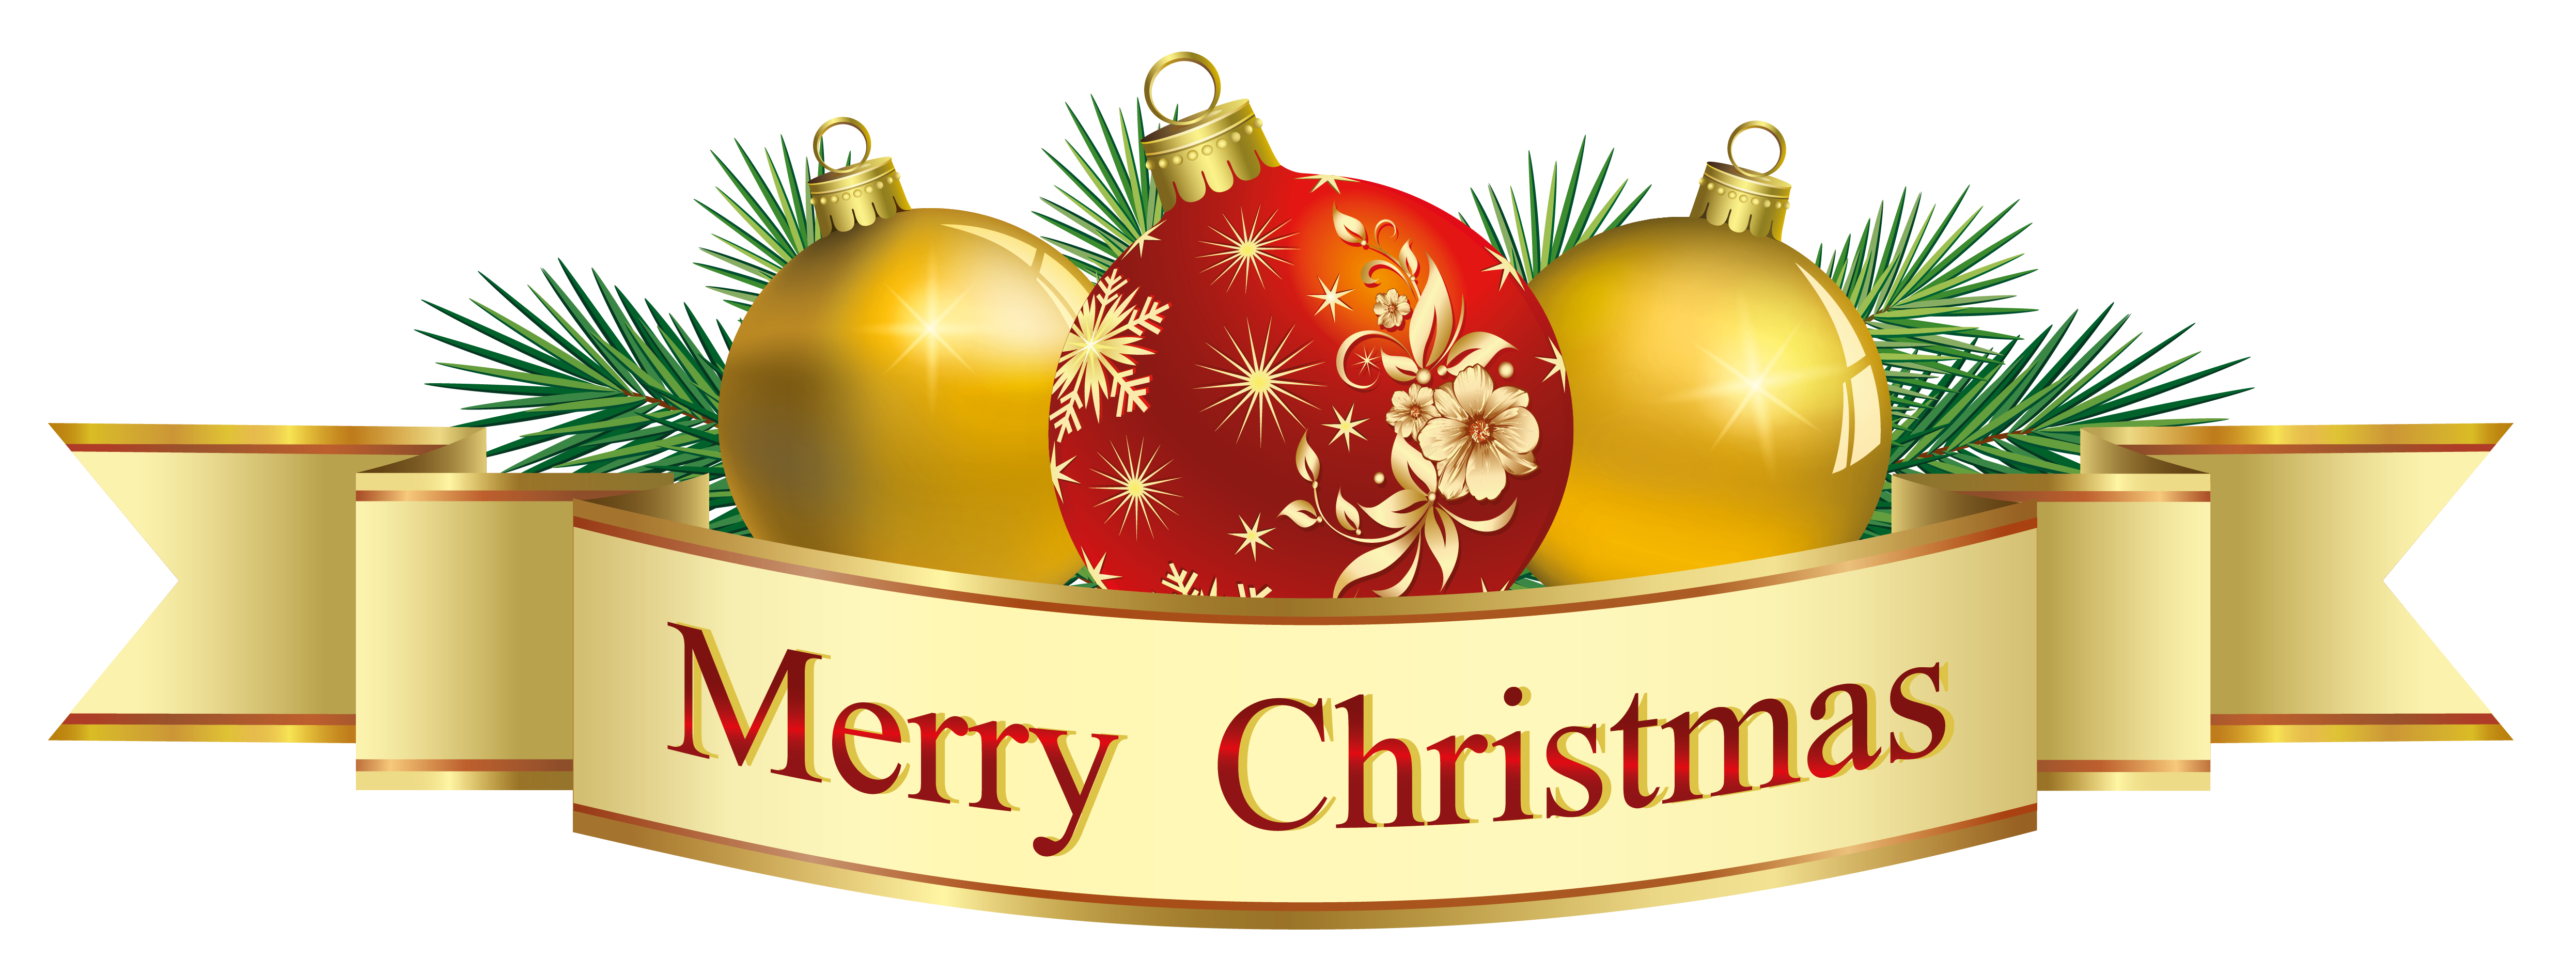 Transparent Merry Christmas Deco Clipart Imagenes de